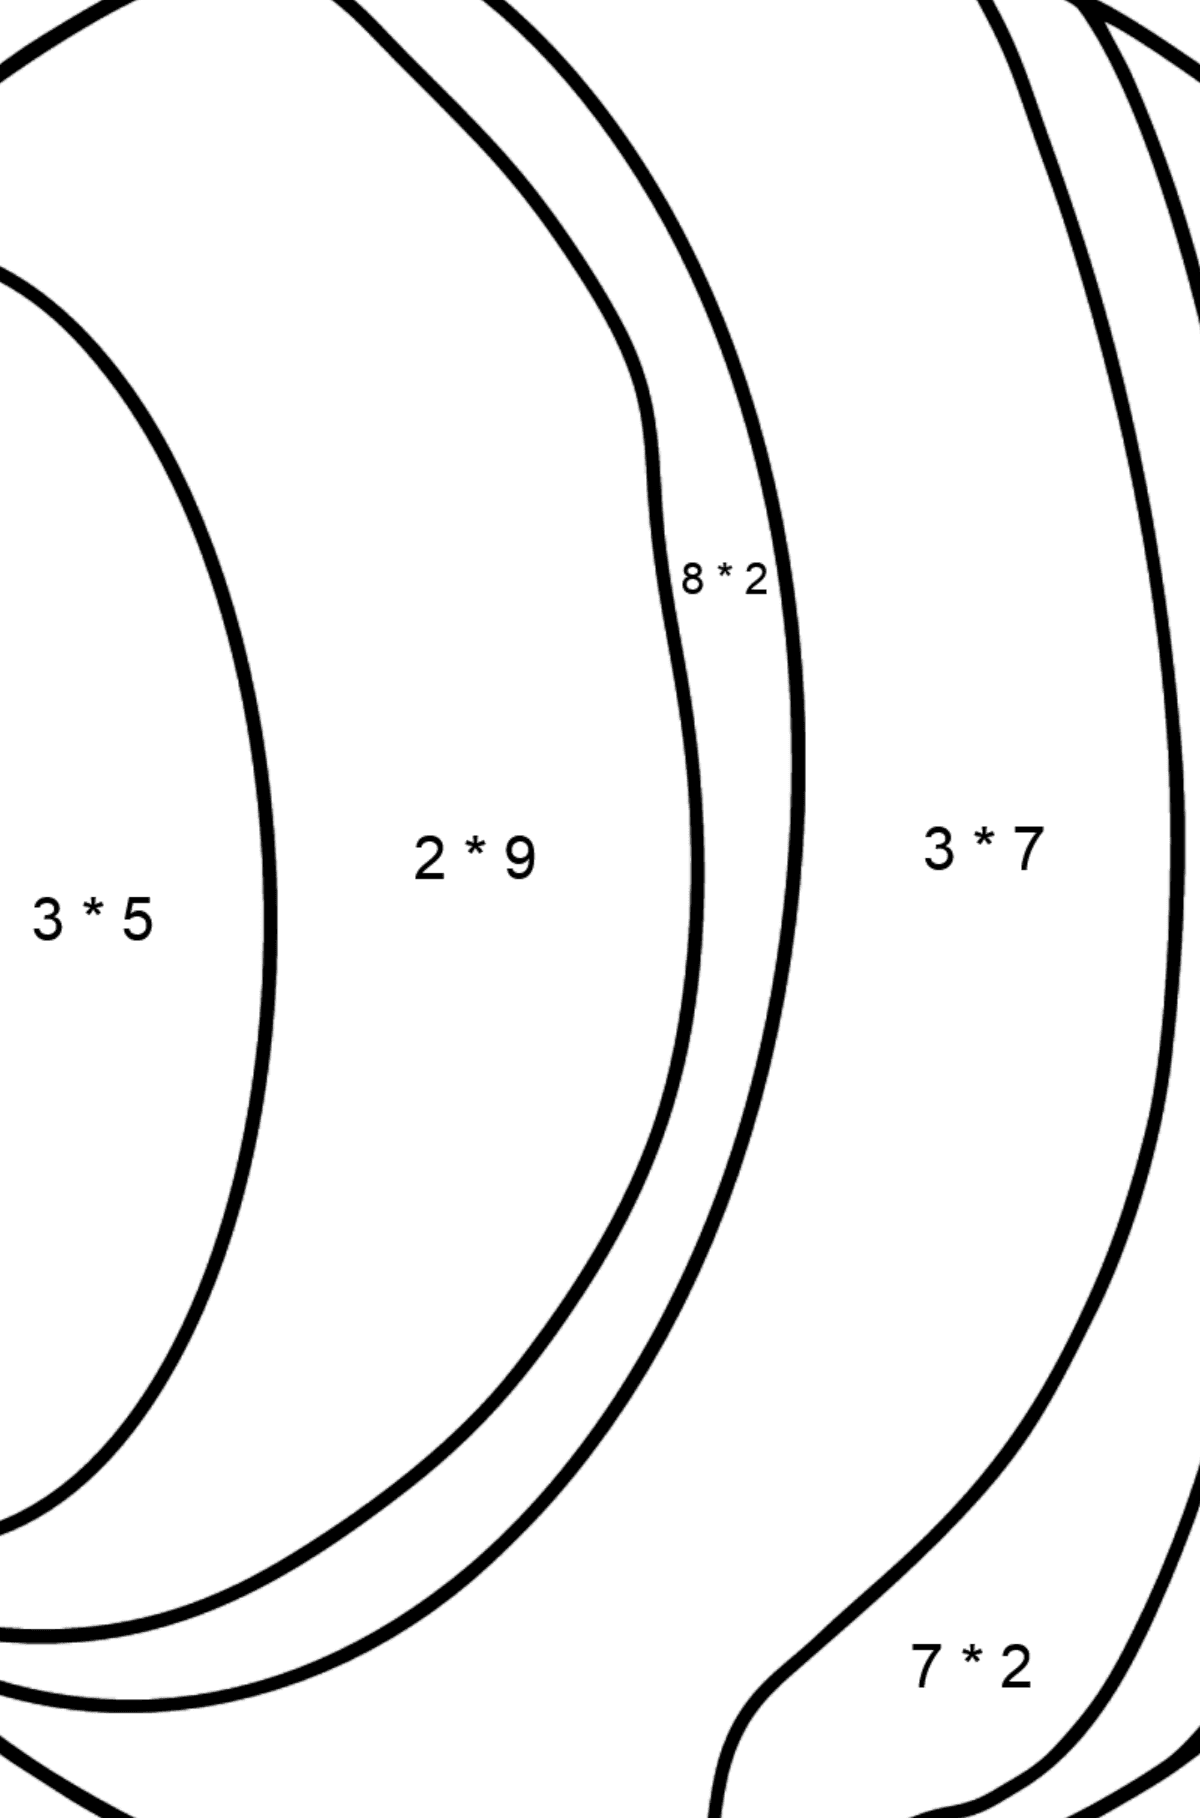 Uranus coloring page - Math Coloring - Multiplication for Kids